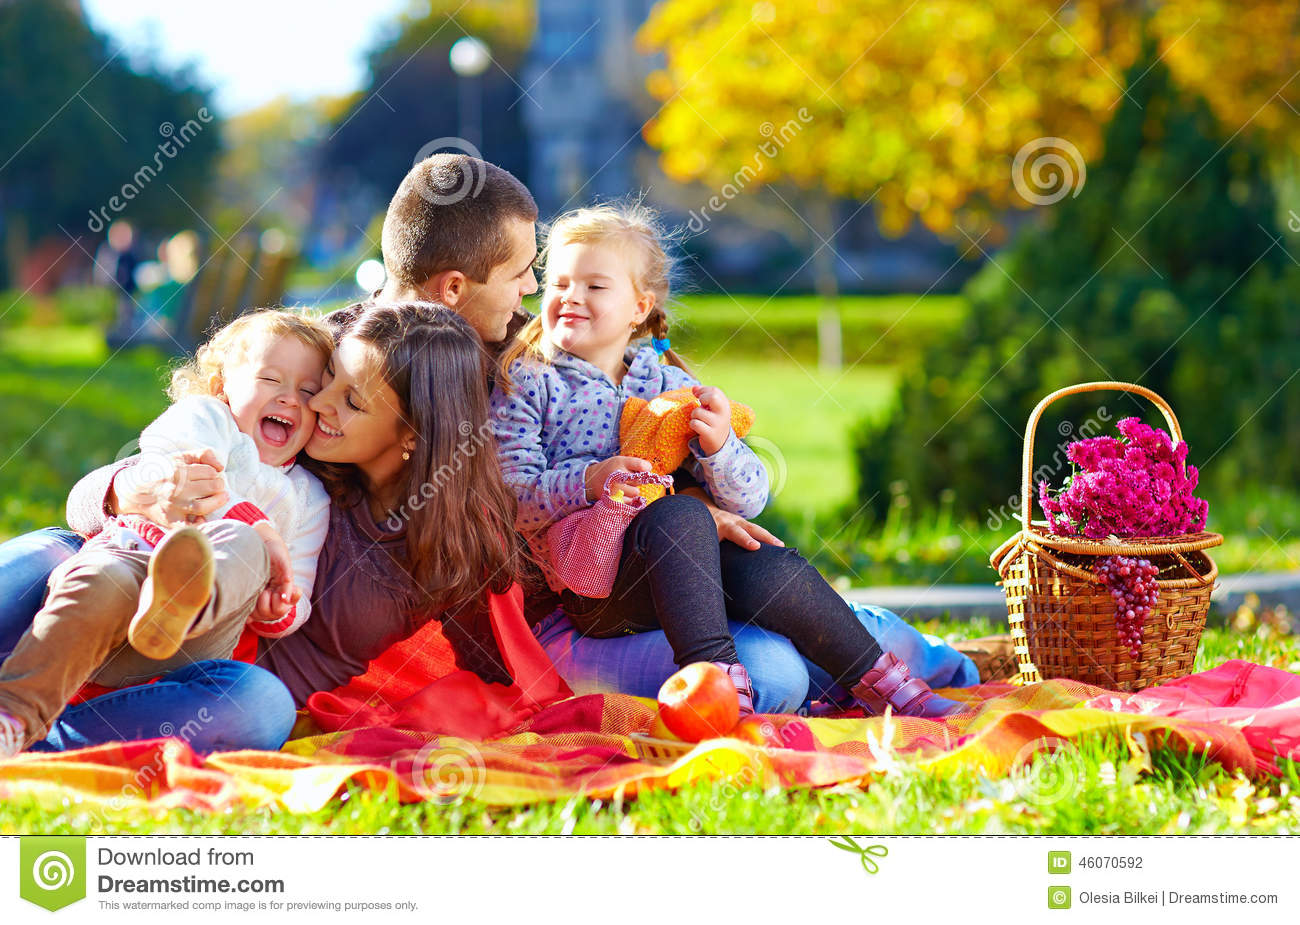 Download Happy Family On Autumn Picnic In Park Stock Photo - Image of autumn, daughter: 46070592